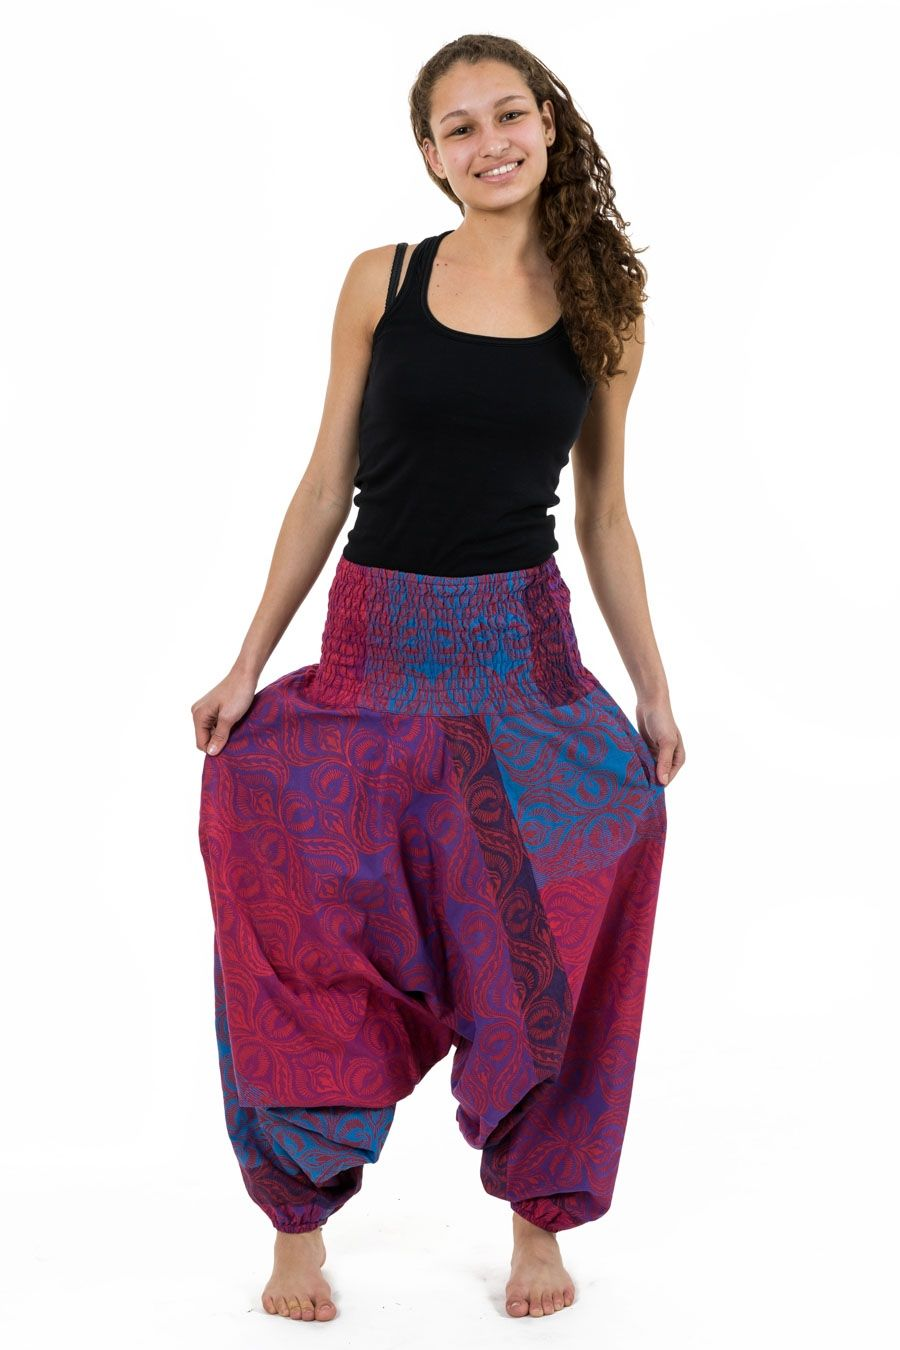 Sarouel grande taille 3 en 1 femme babacool new madras chakra - Vetements hippie baba cool ...